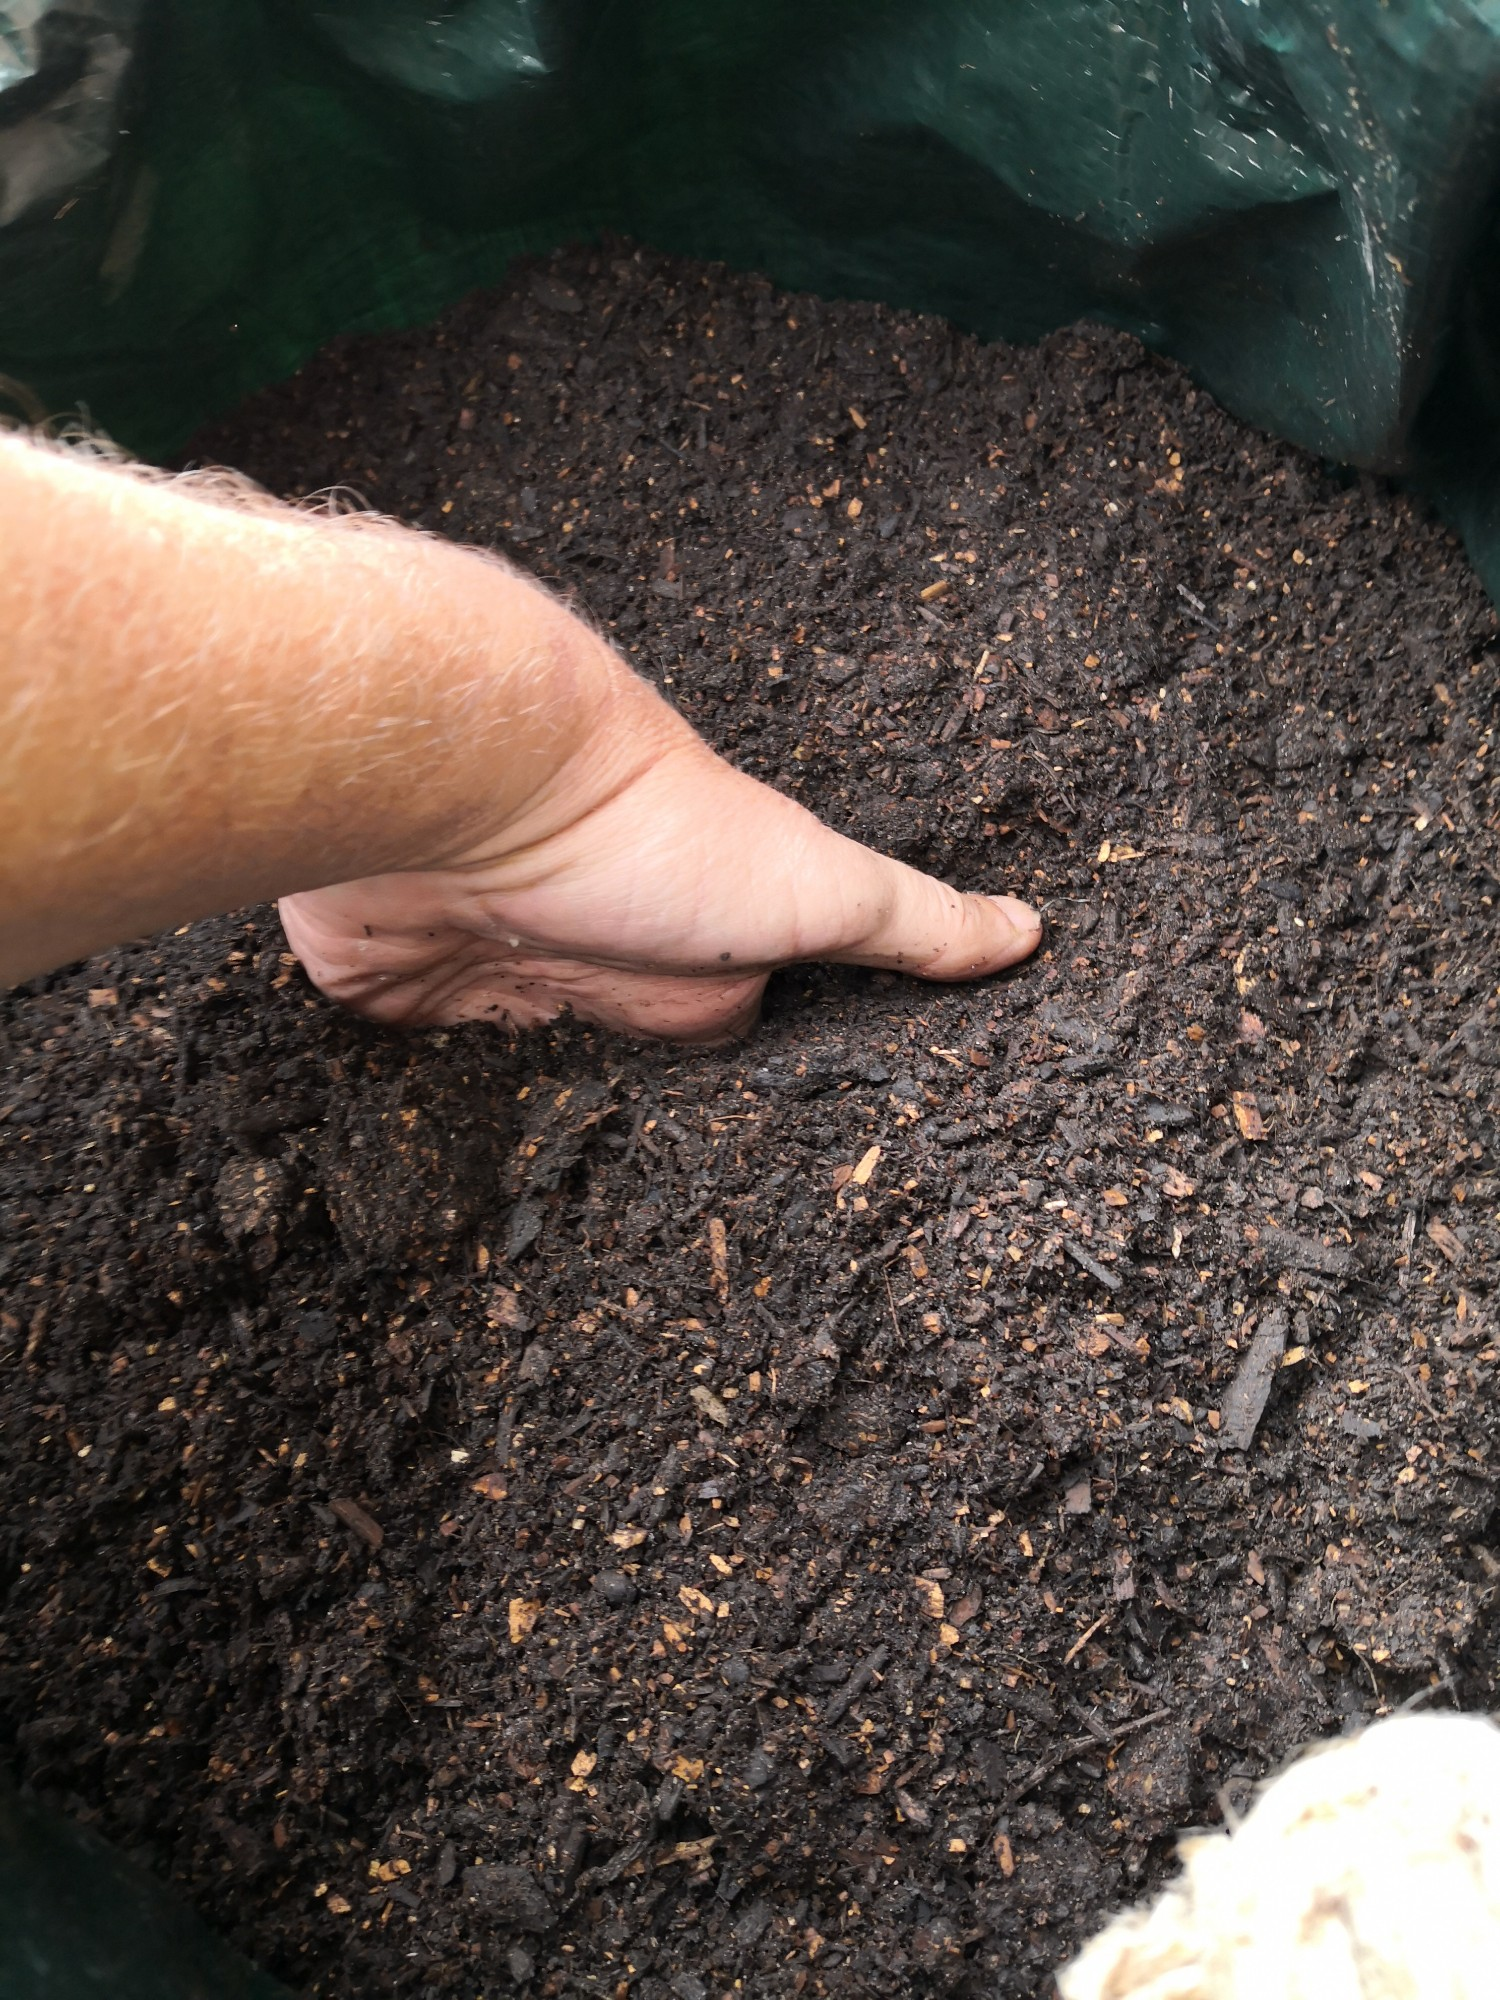 Put 10 cm of compost into the bottom of the bag.